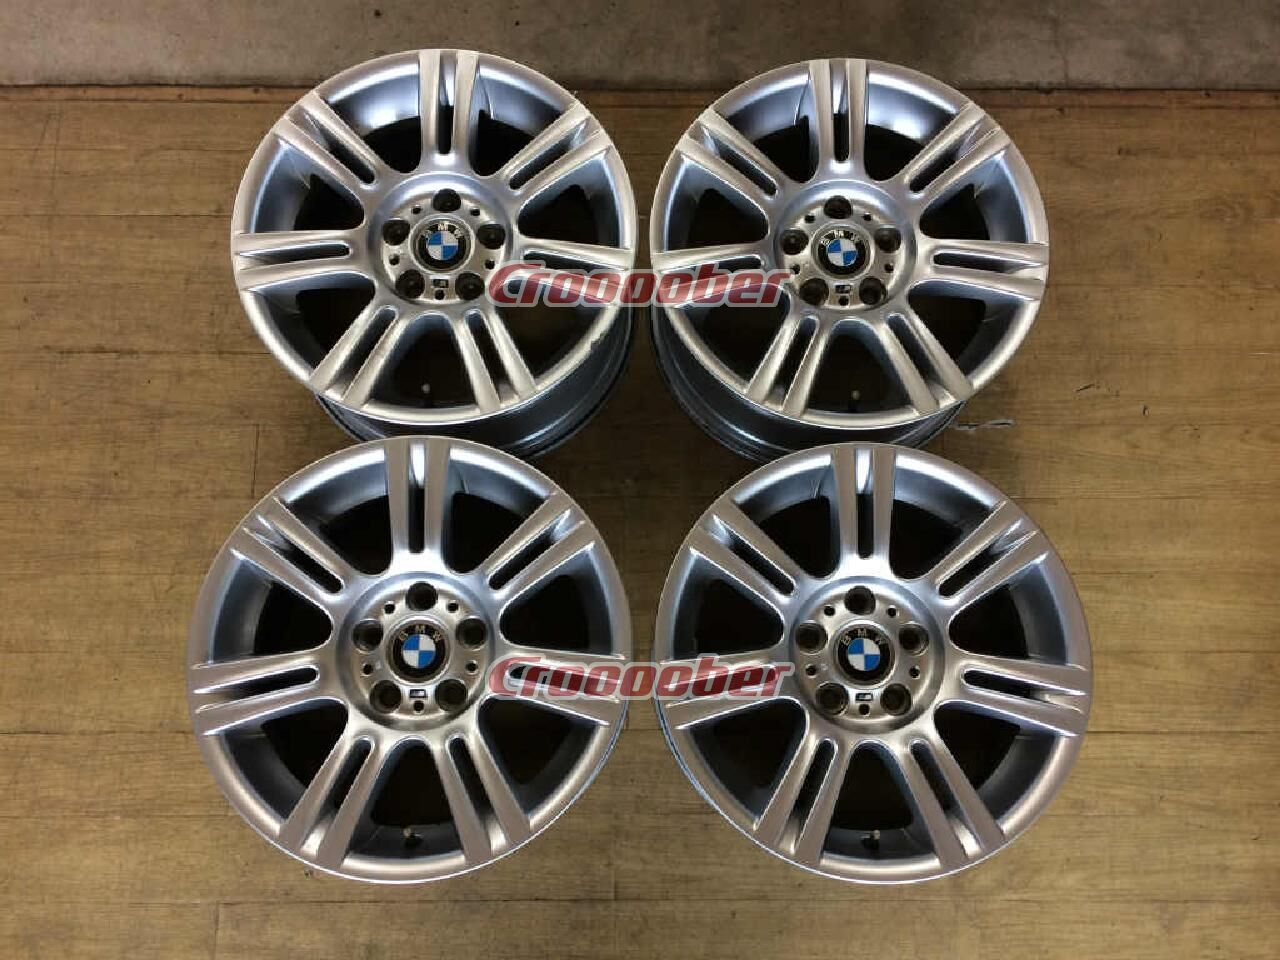 Bmw E90 M Sports Genuine 17 Inches Aluminum Wheels Four Front 8 0jx17 34 Rear 8 5jx17 37120 5h For Sale Croooober